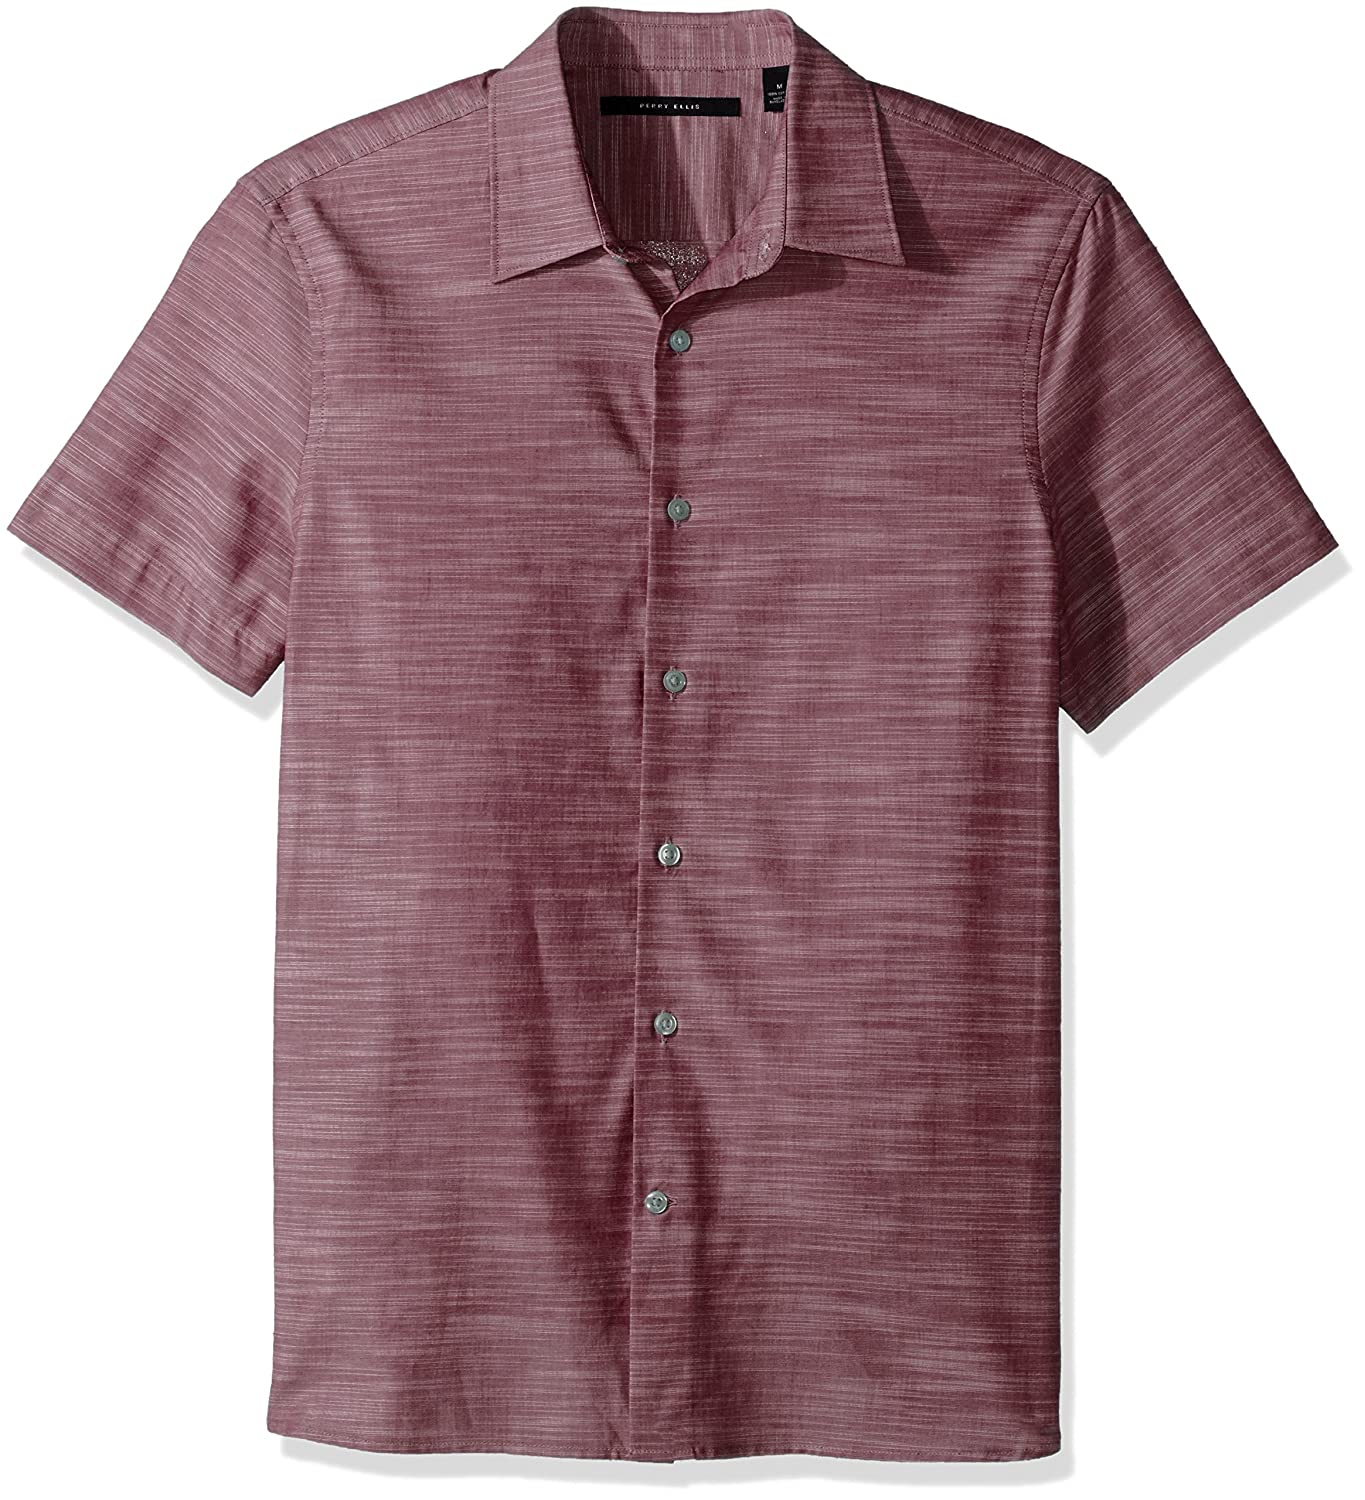 Perry Ellis Mens / Short Sleeve Solid Slub Texture Shirt